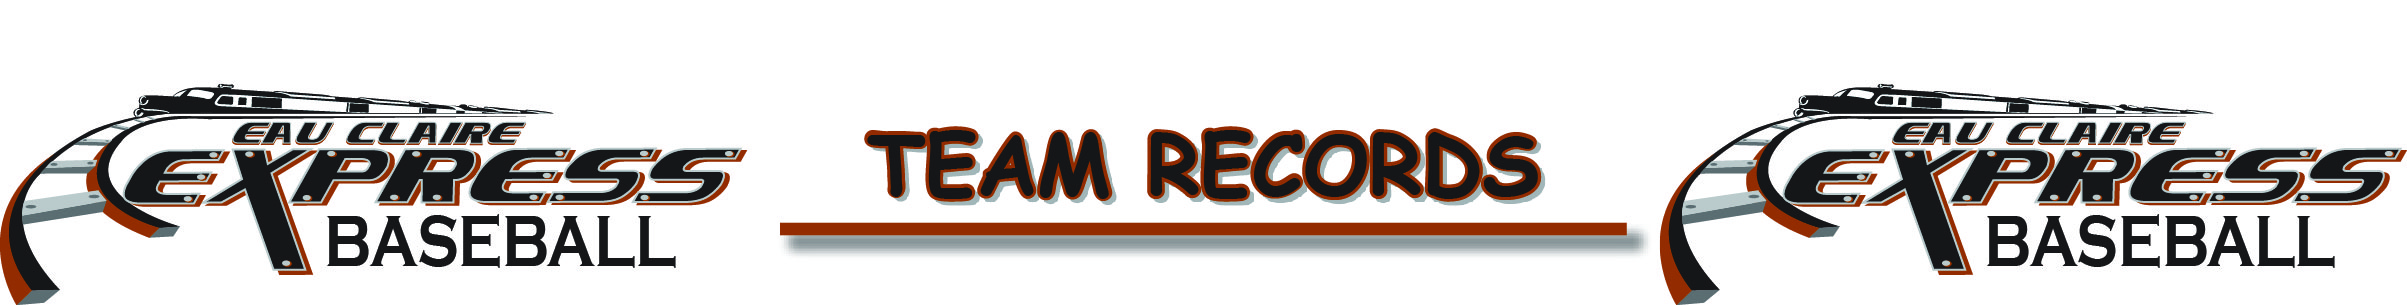 TEAMRECORDS